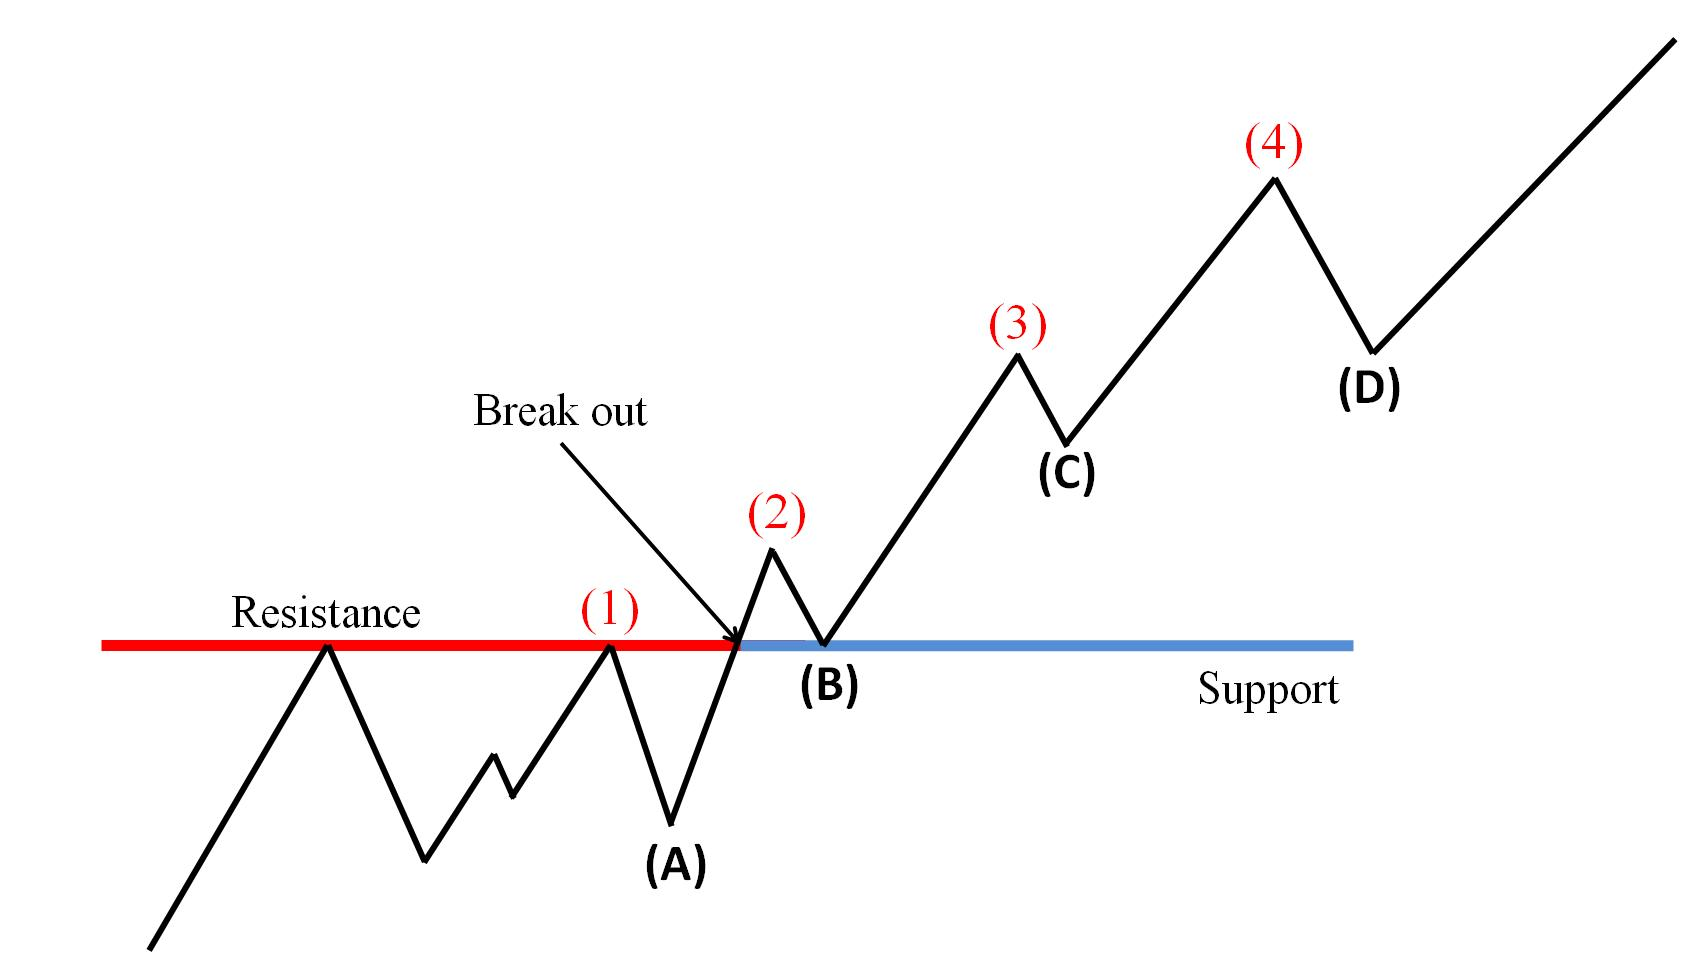 The price breaks out of the resistance and enters an uptrend